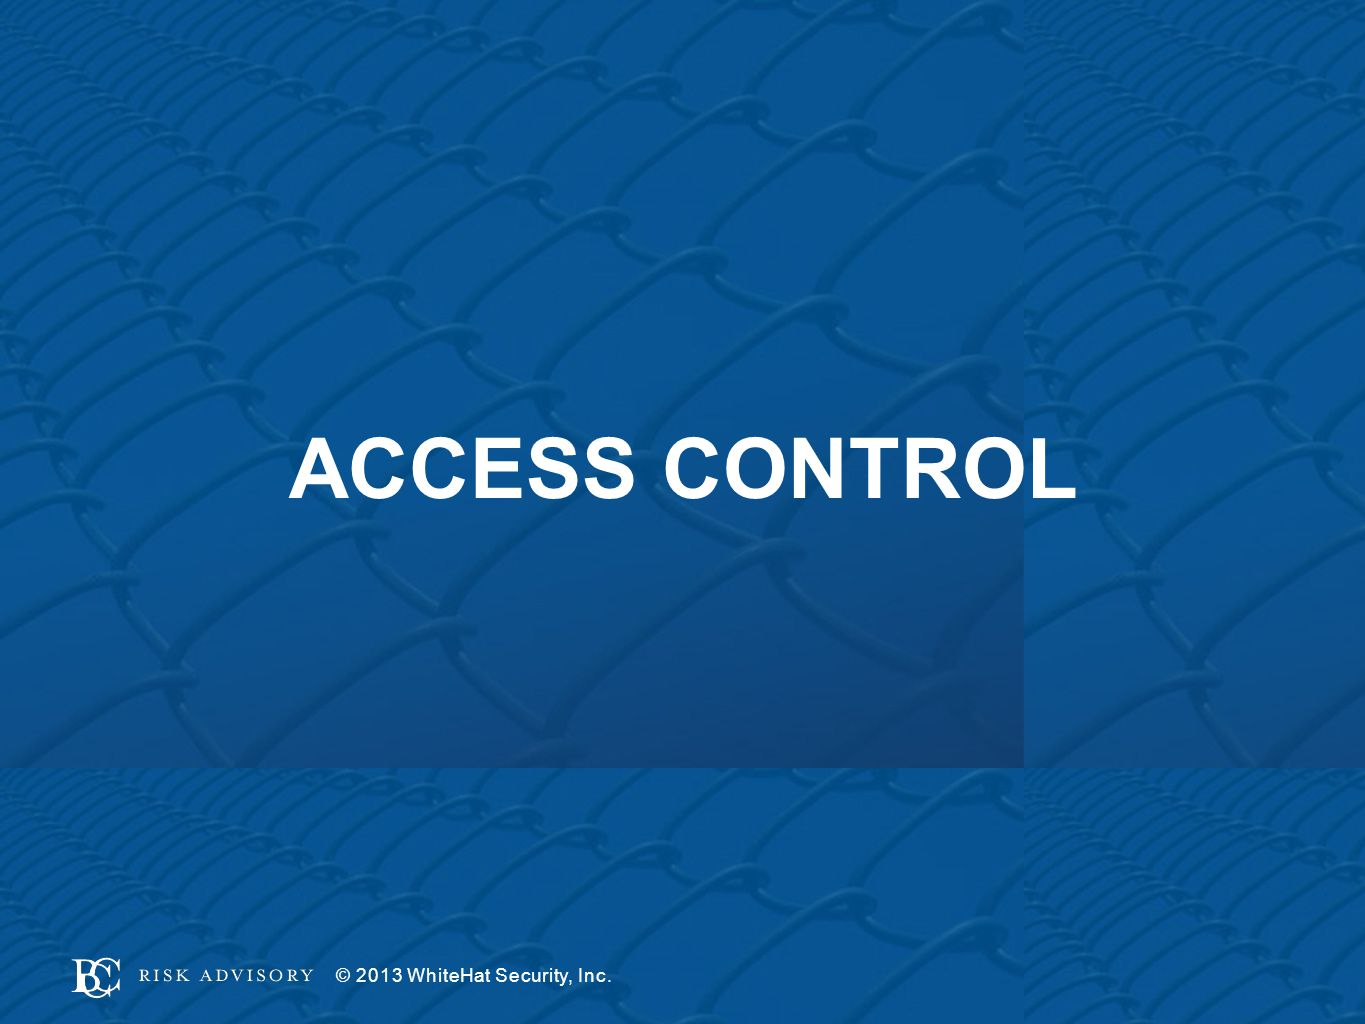 ACCESS CONTROL © 2013 WhiteHat Security, Inc.